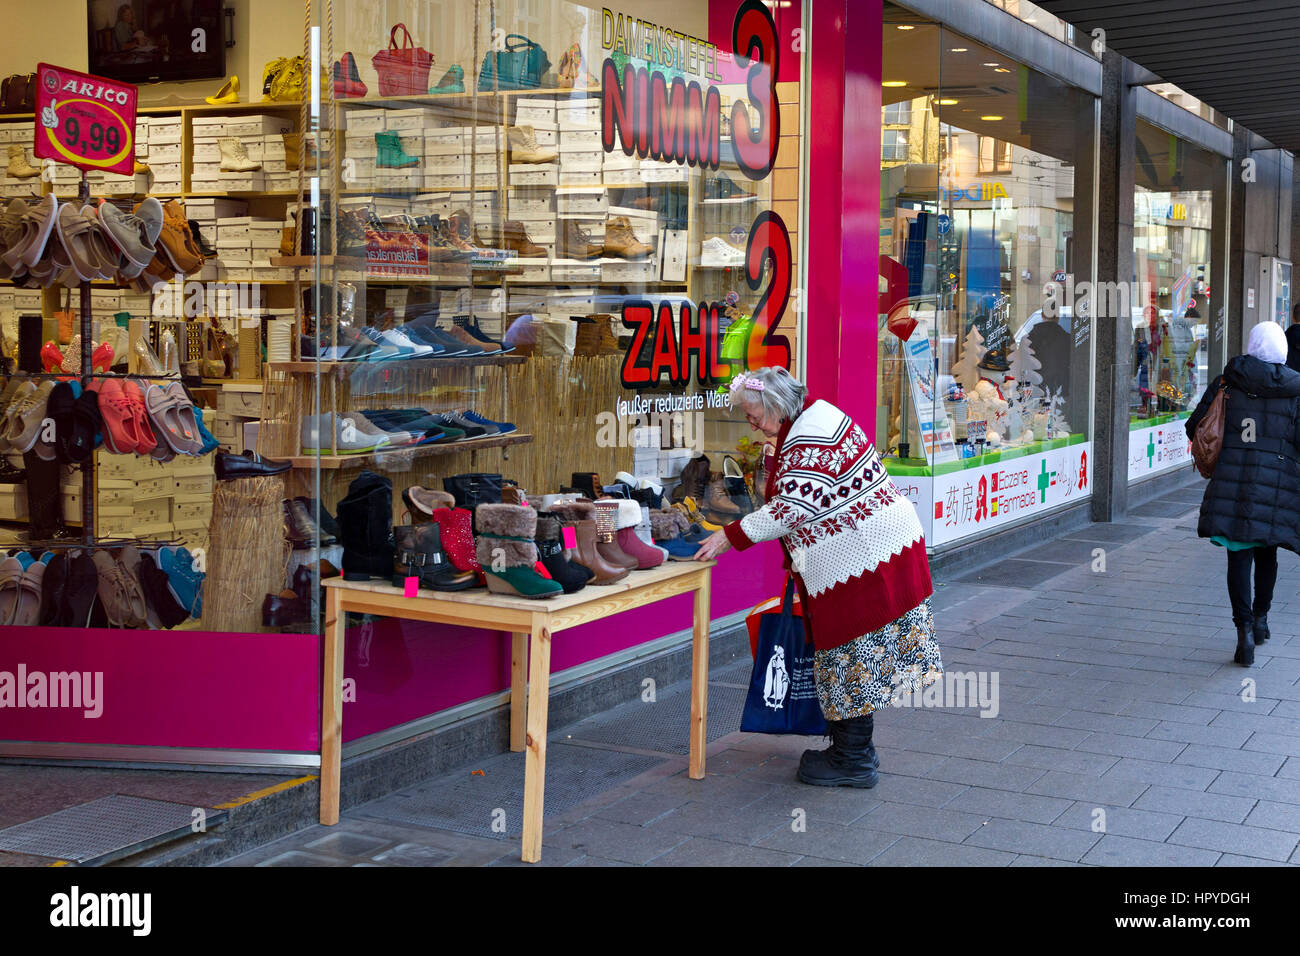 Good Elderly Lady Looking At Reduced Price Shoes Outside A Shoe Shop, Munich,  Upper Bavaria, Germany, Europe